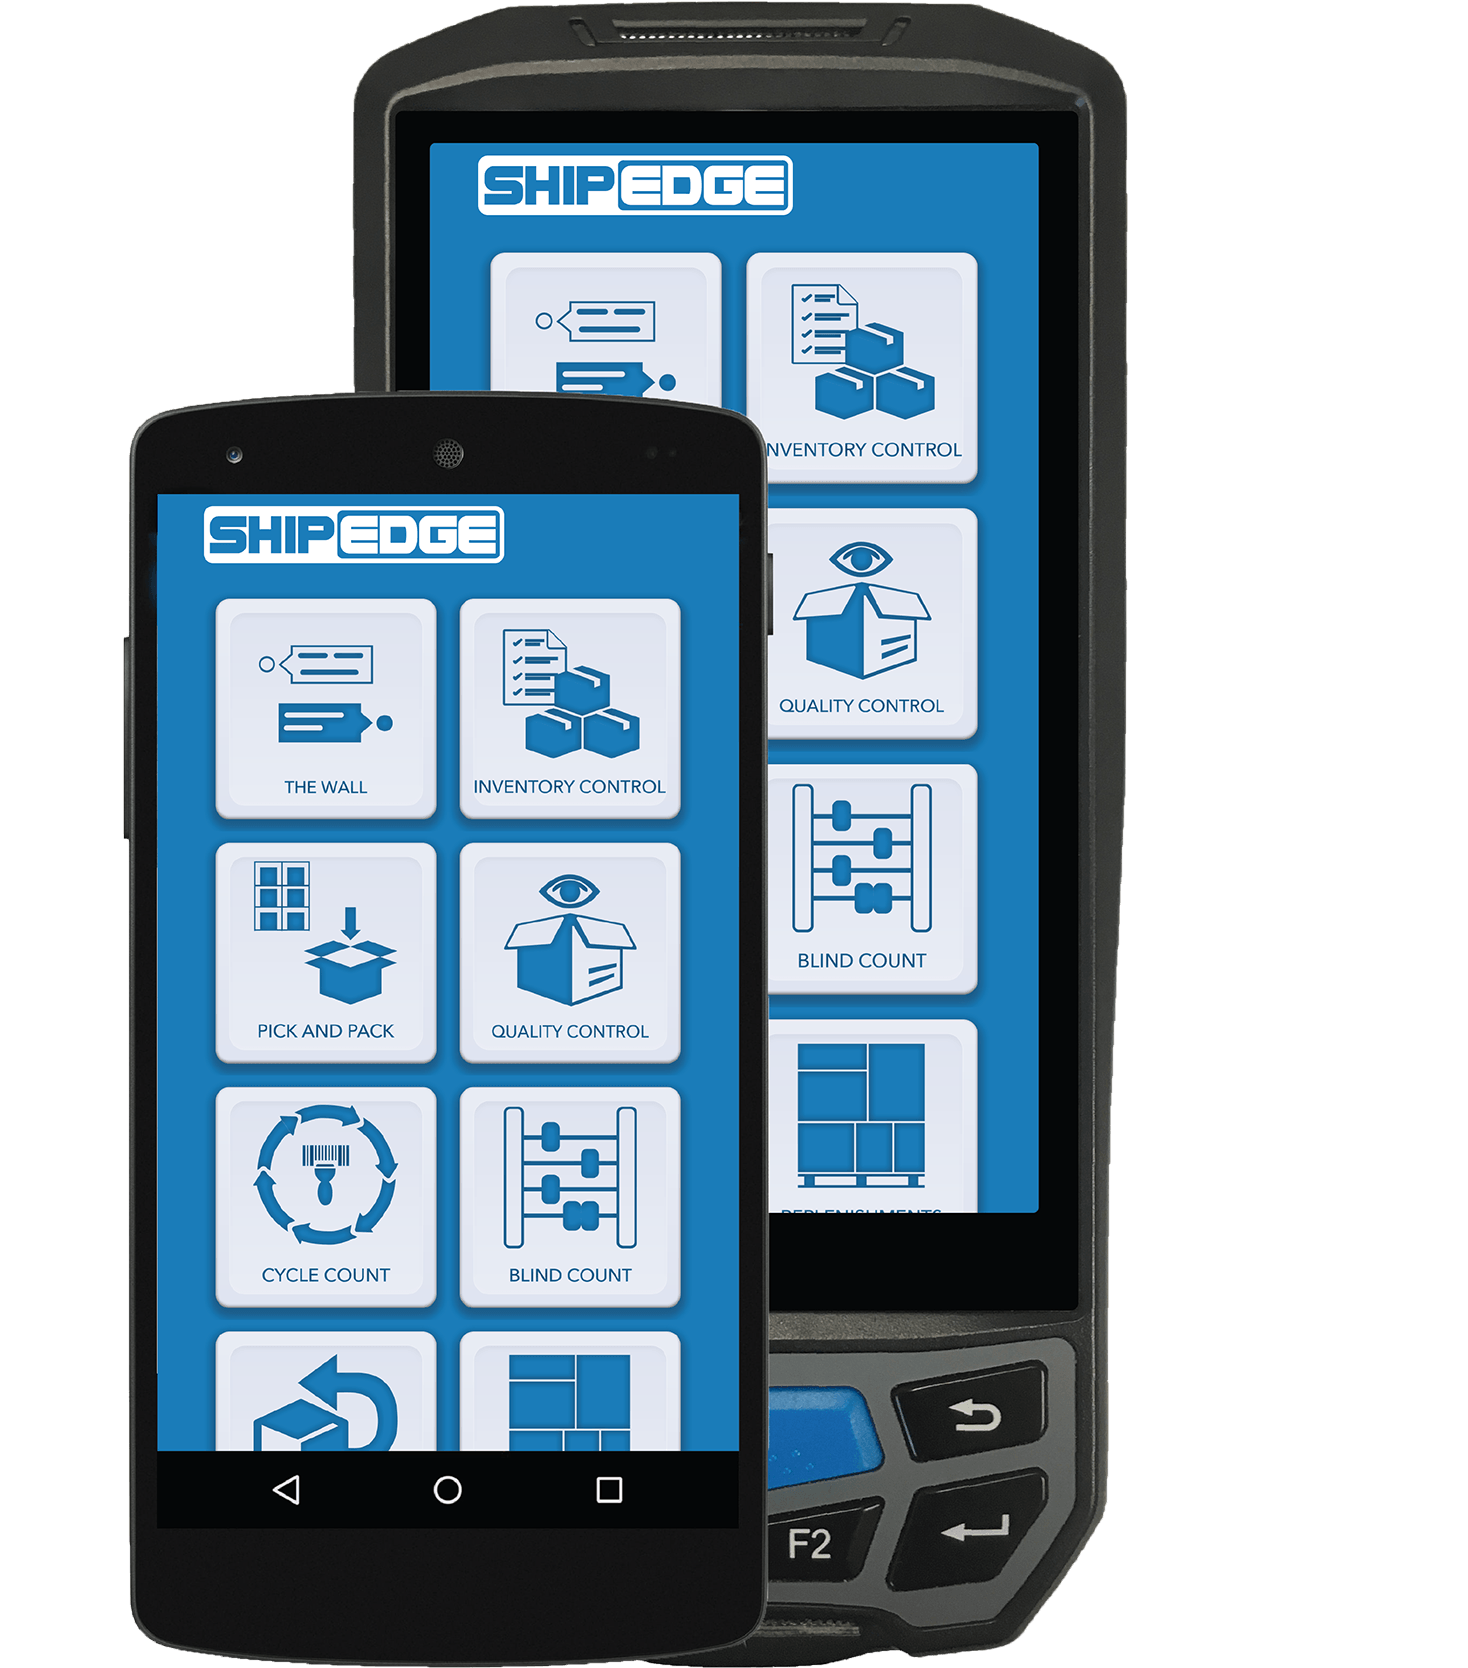 Shipedge Software - Mobile barcode scanner devices shown running Shipedge